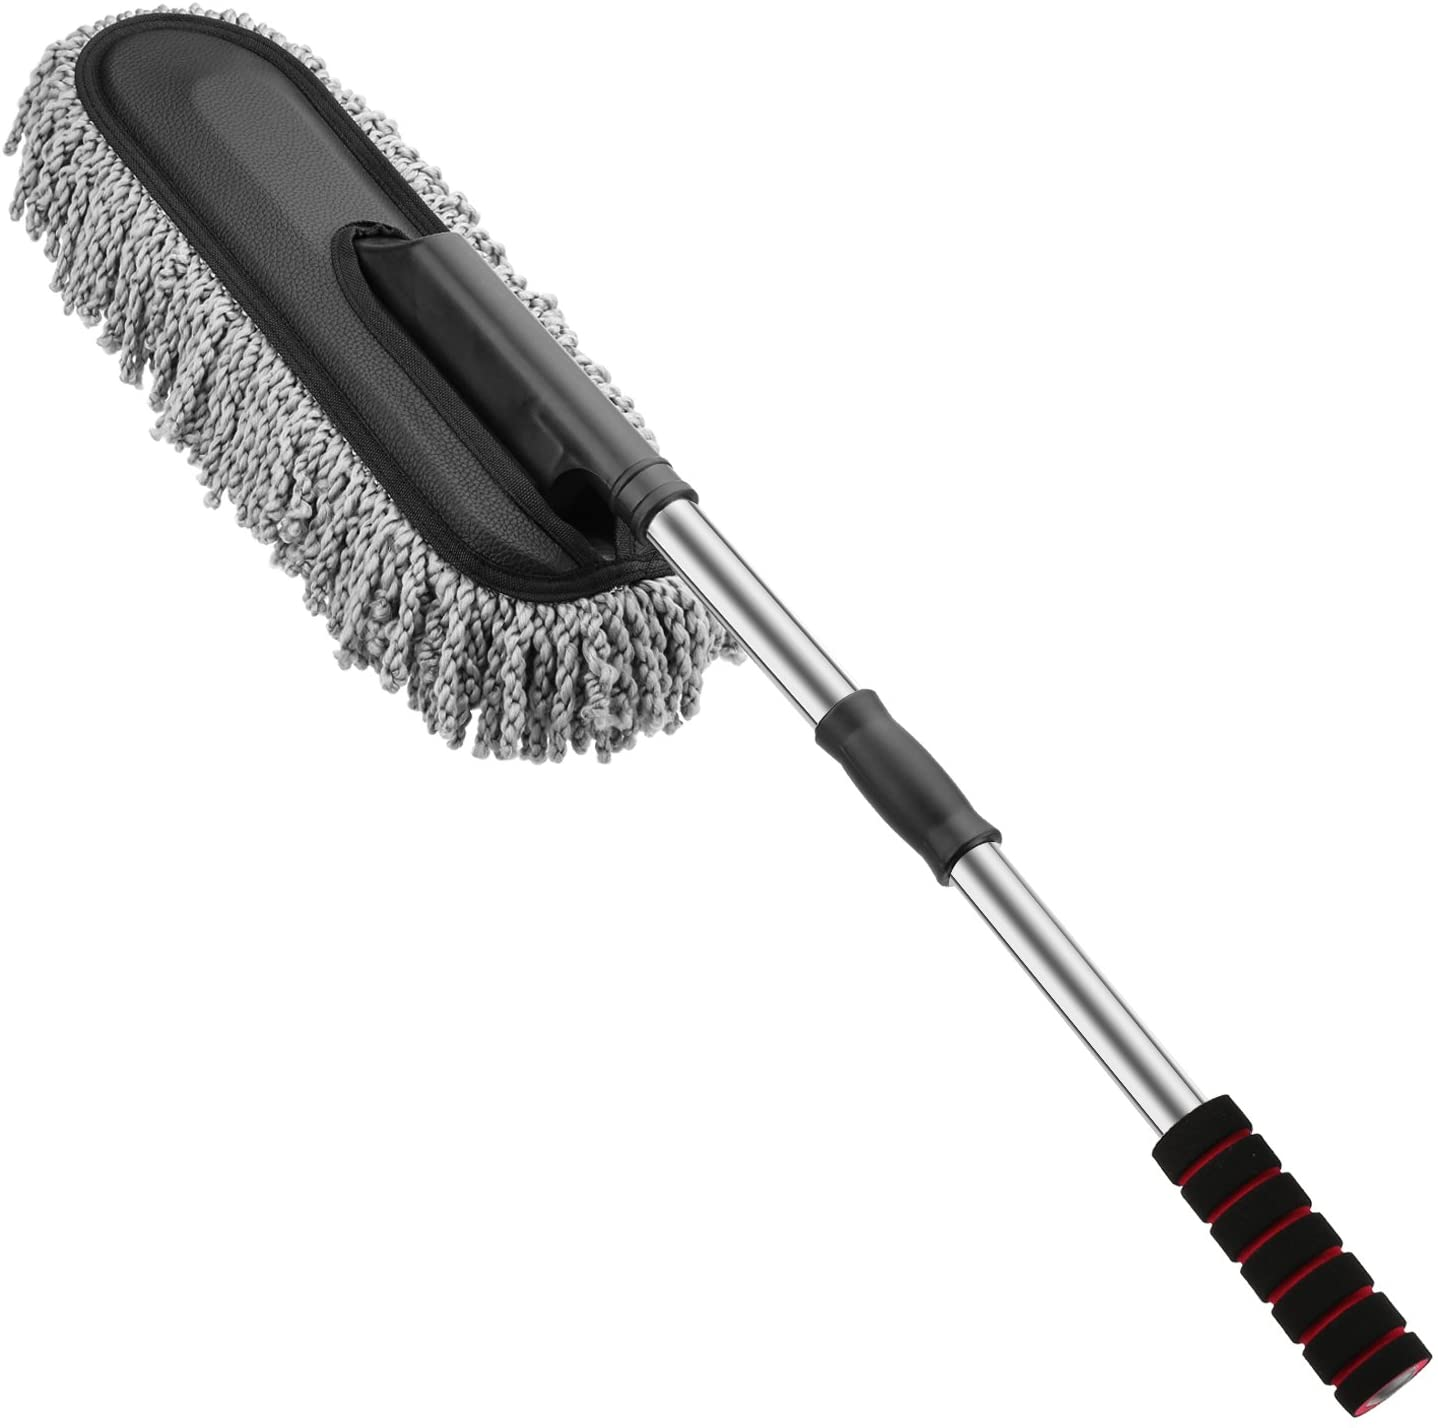 microfiber-car-duster-with-long-extendable-handle-car-cleaner-washable-duster-car-wash-dust-wax-mop-car-washing-brush